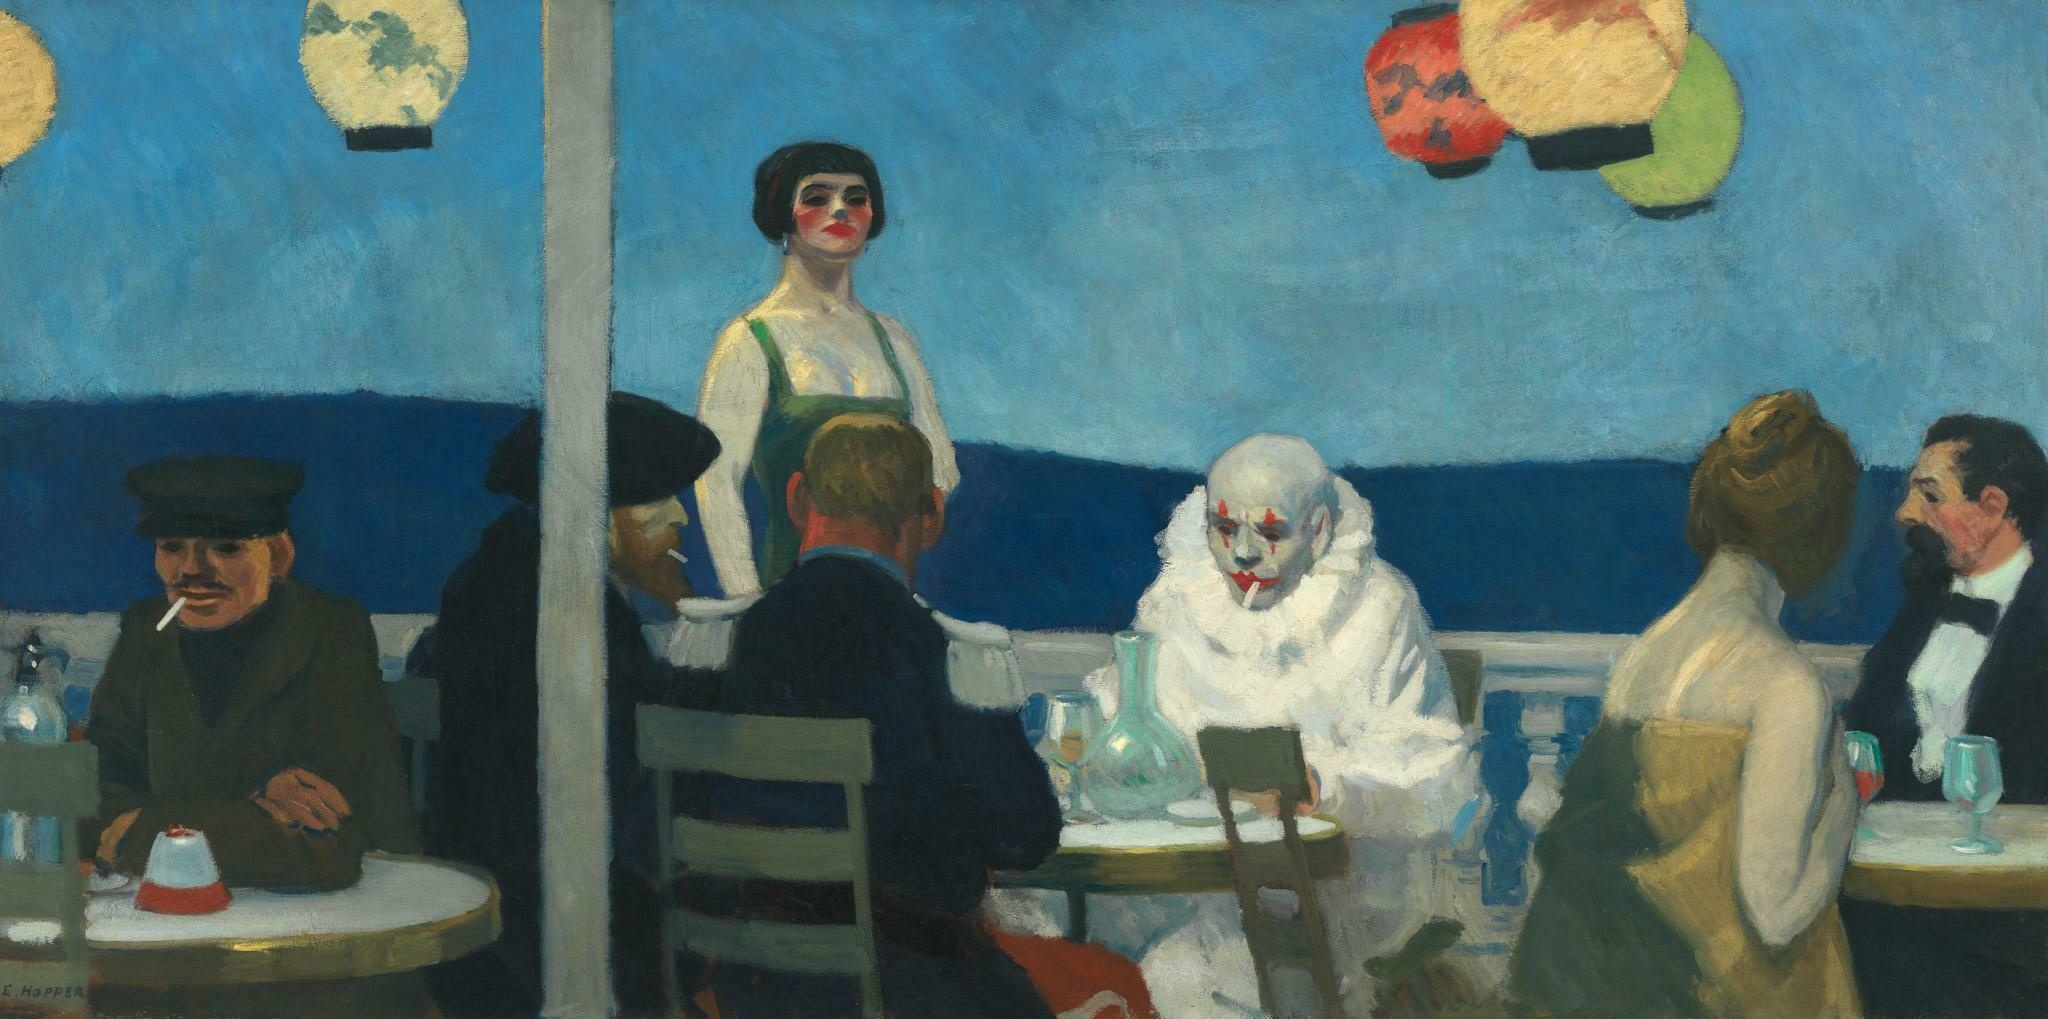 On a balcony, six figures in eclectic attire sit at dining tables and make no eye contact.